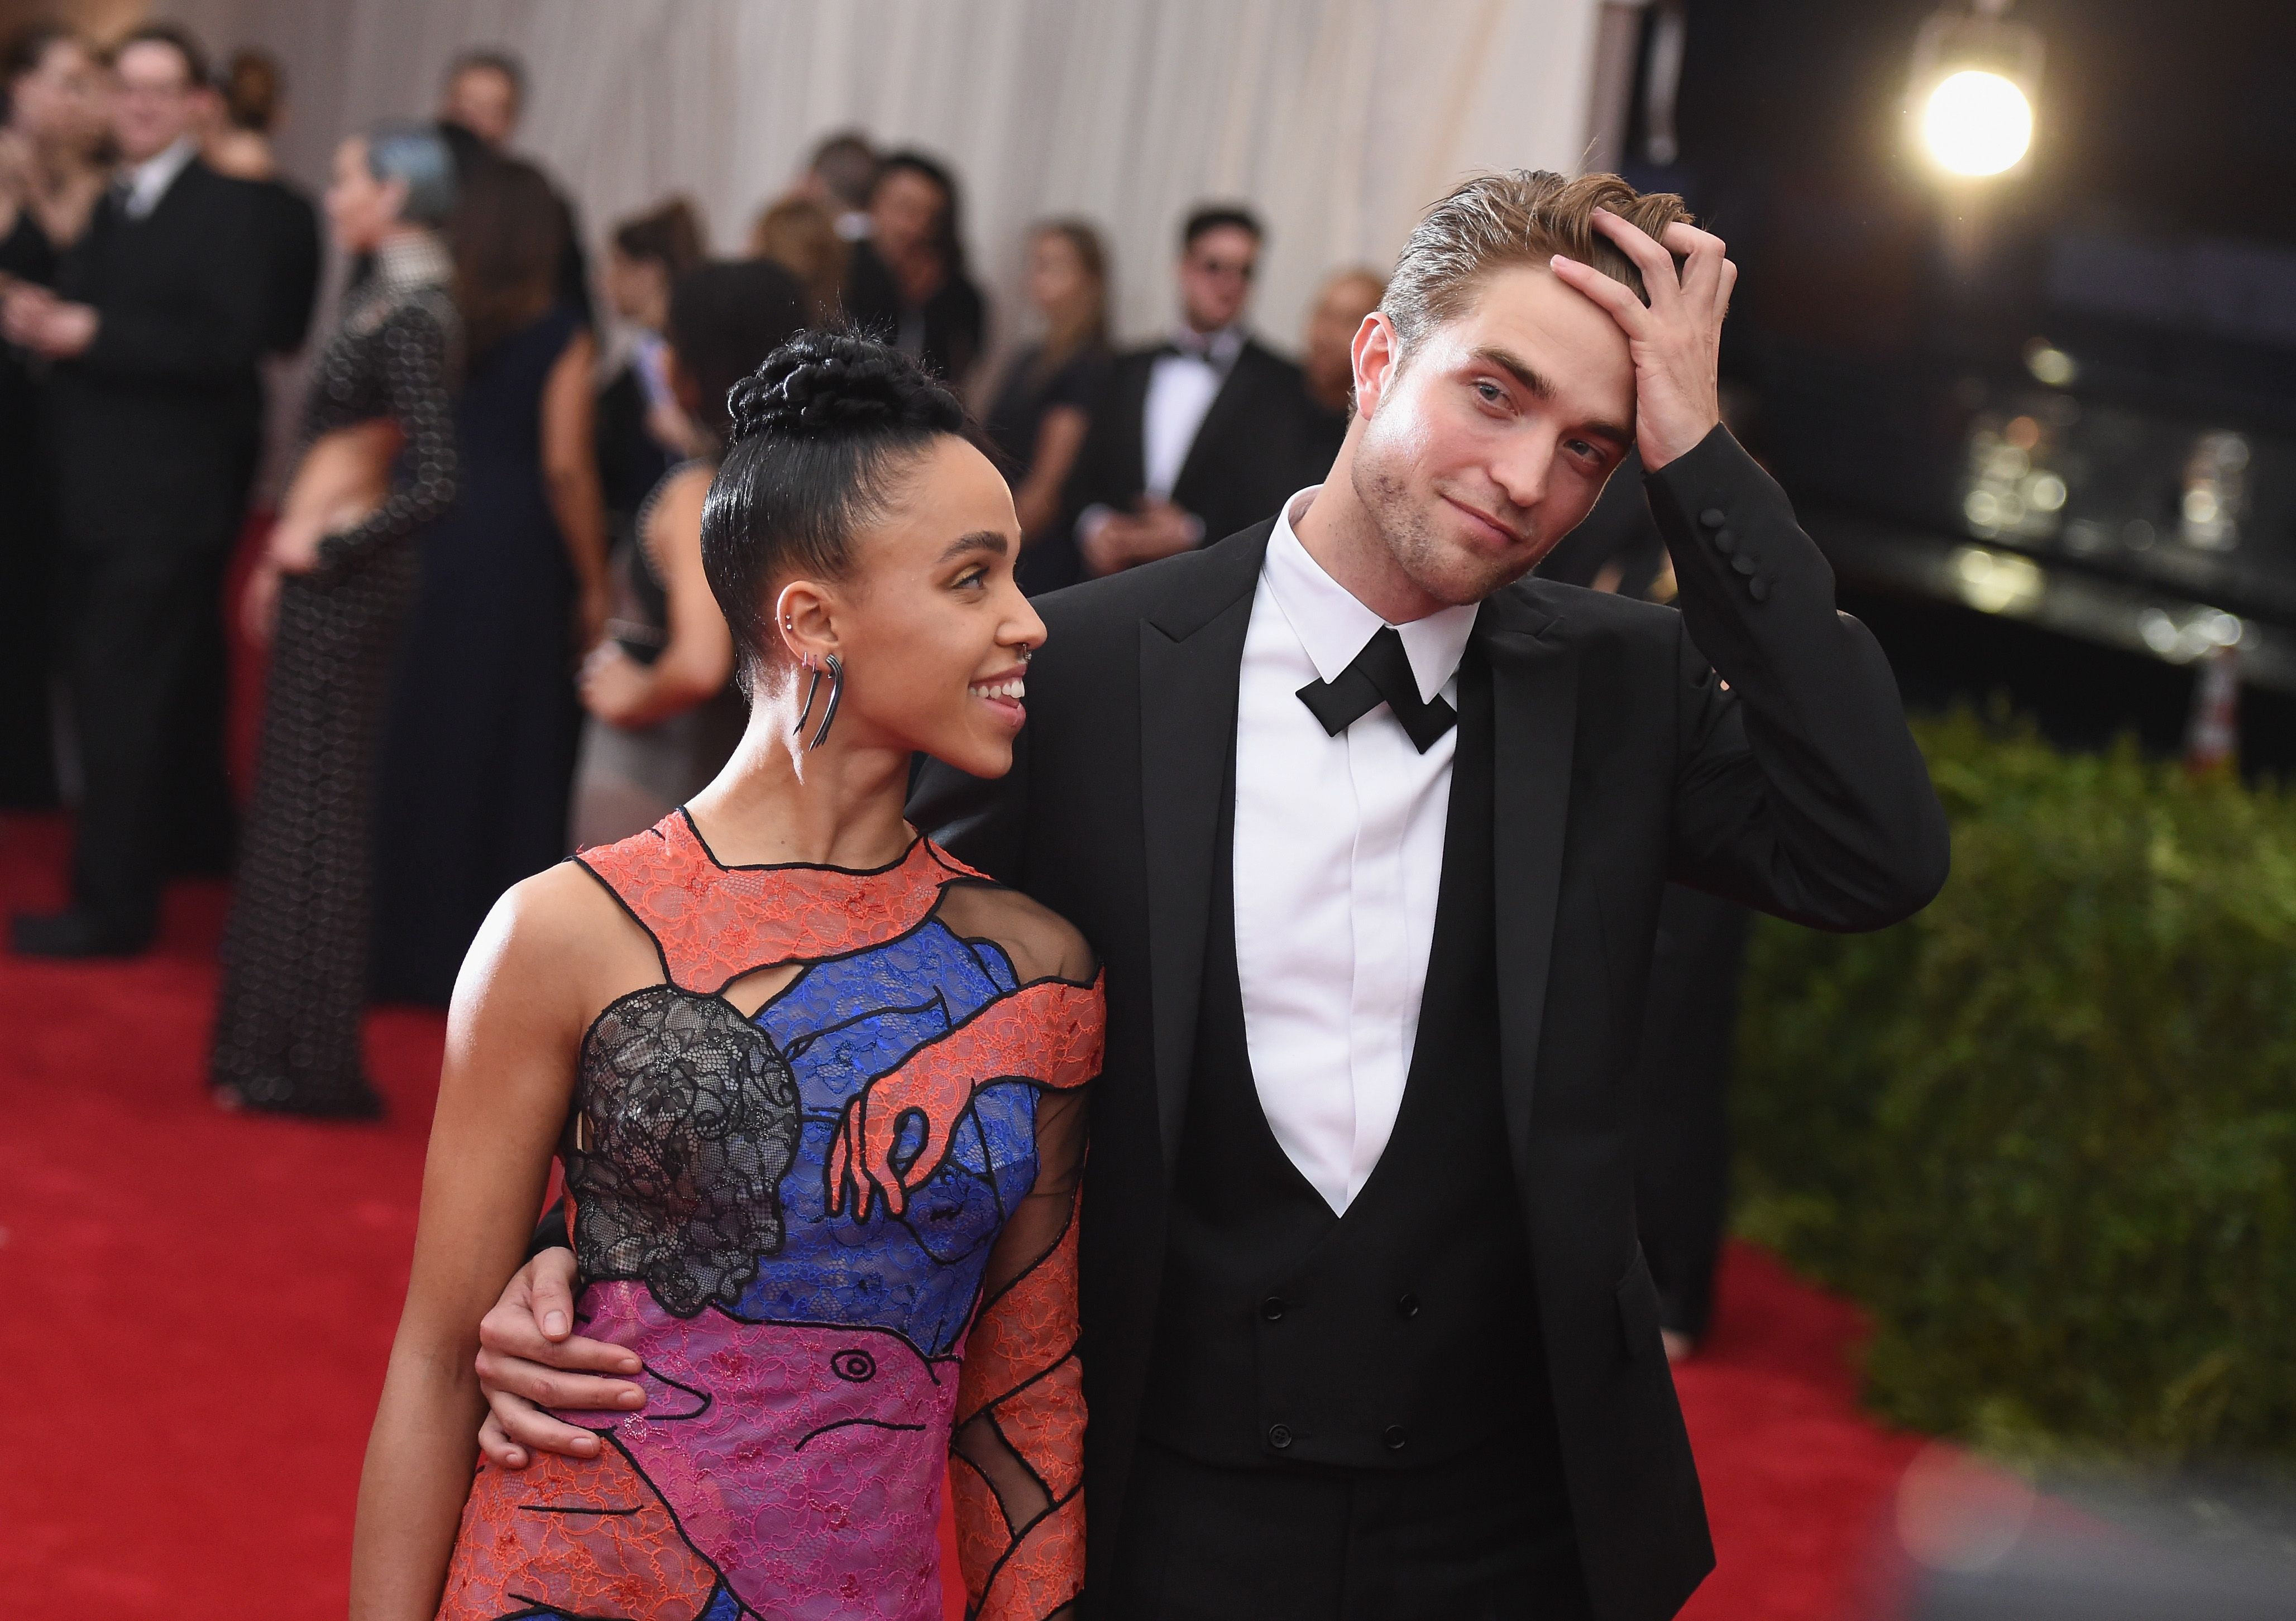 Robert pattinson dating twigs